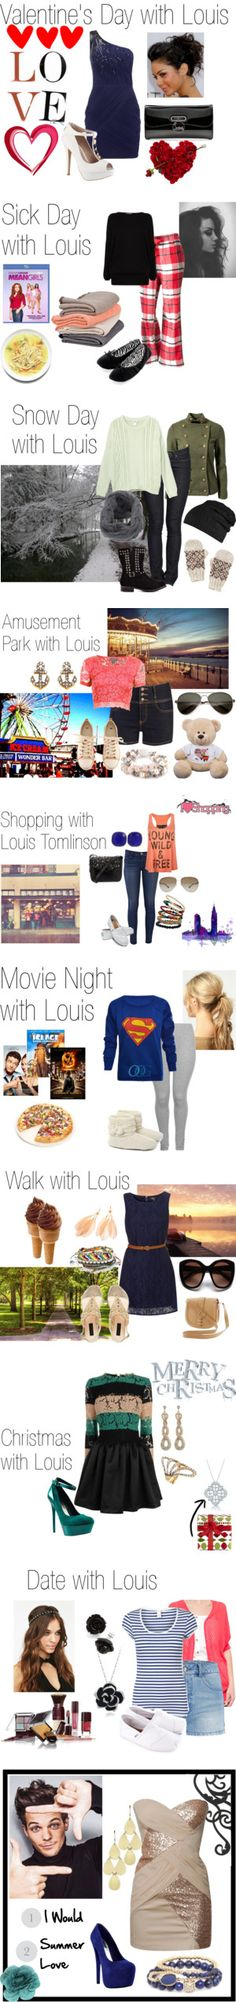 """Date with Louis"" by flamedheart26 ❤ liked on Polyvore"